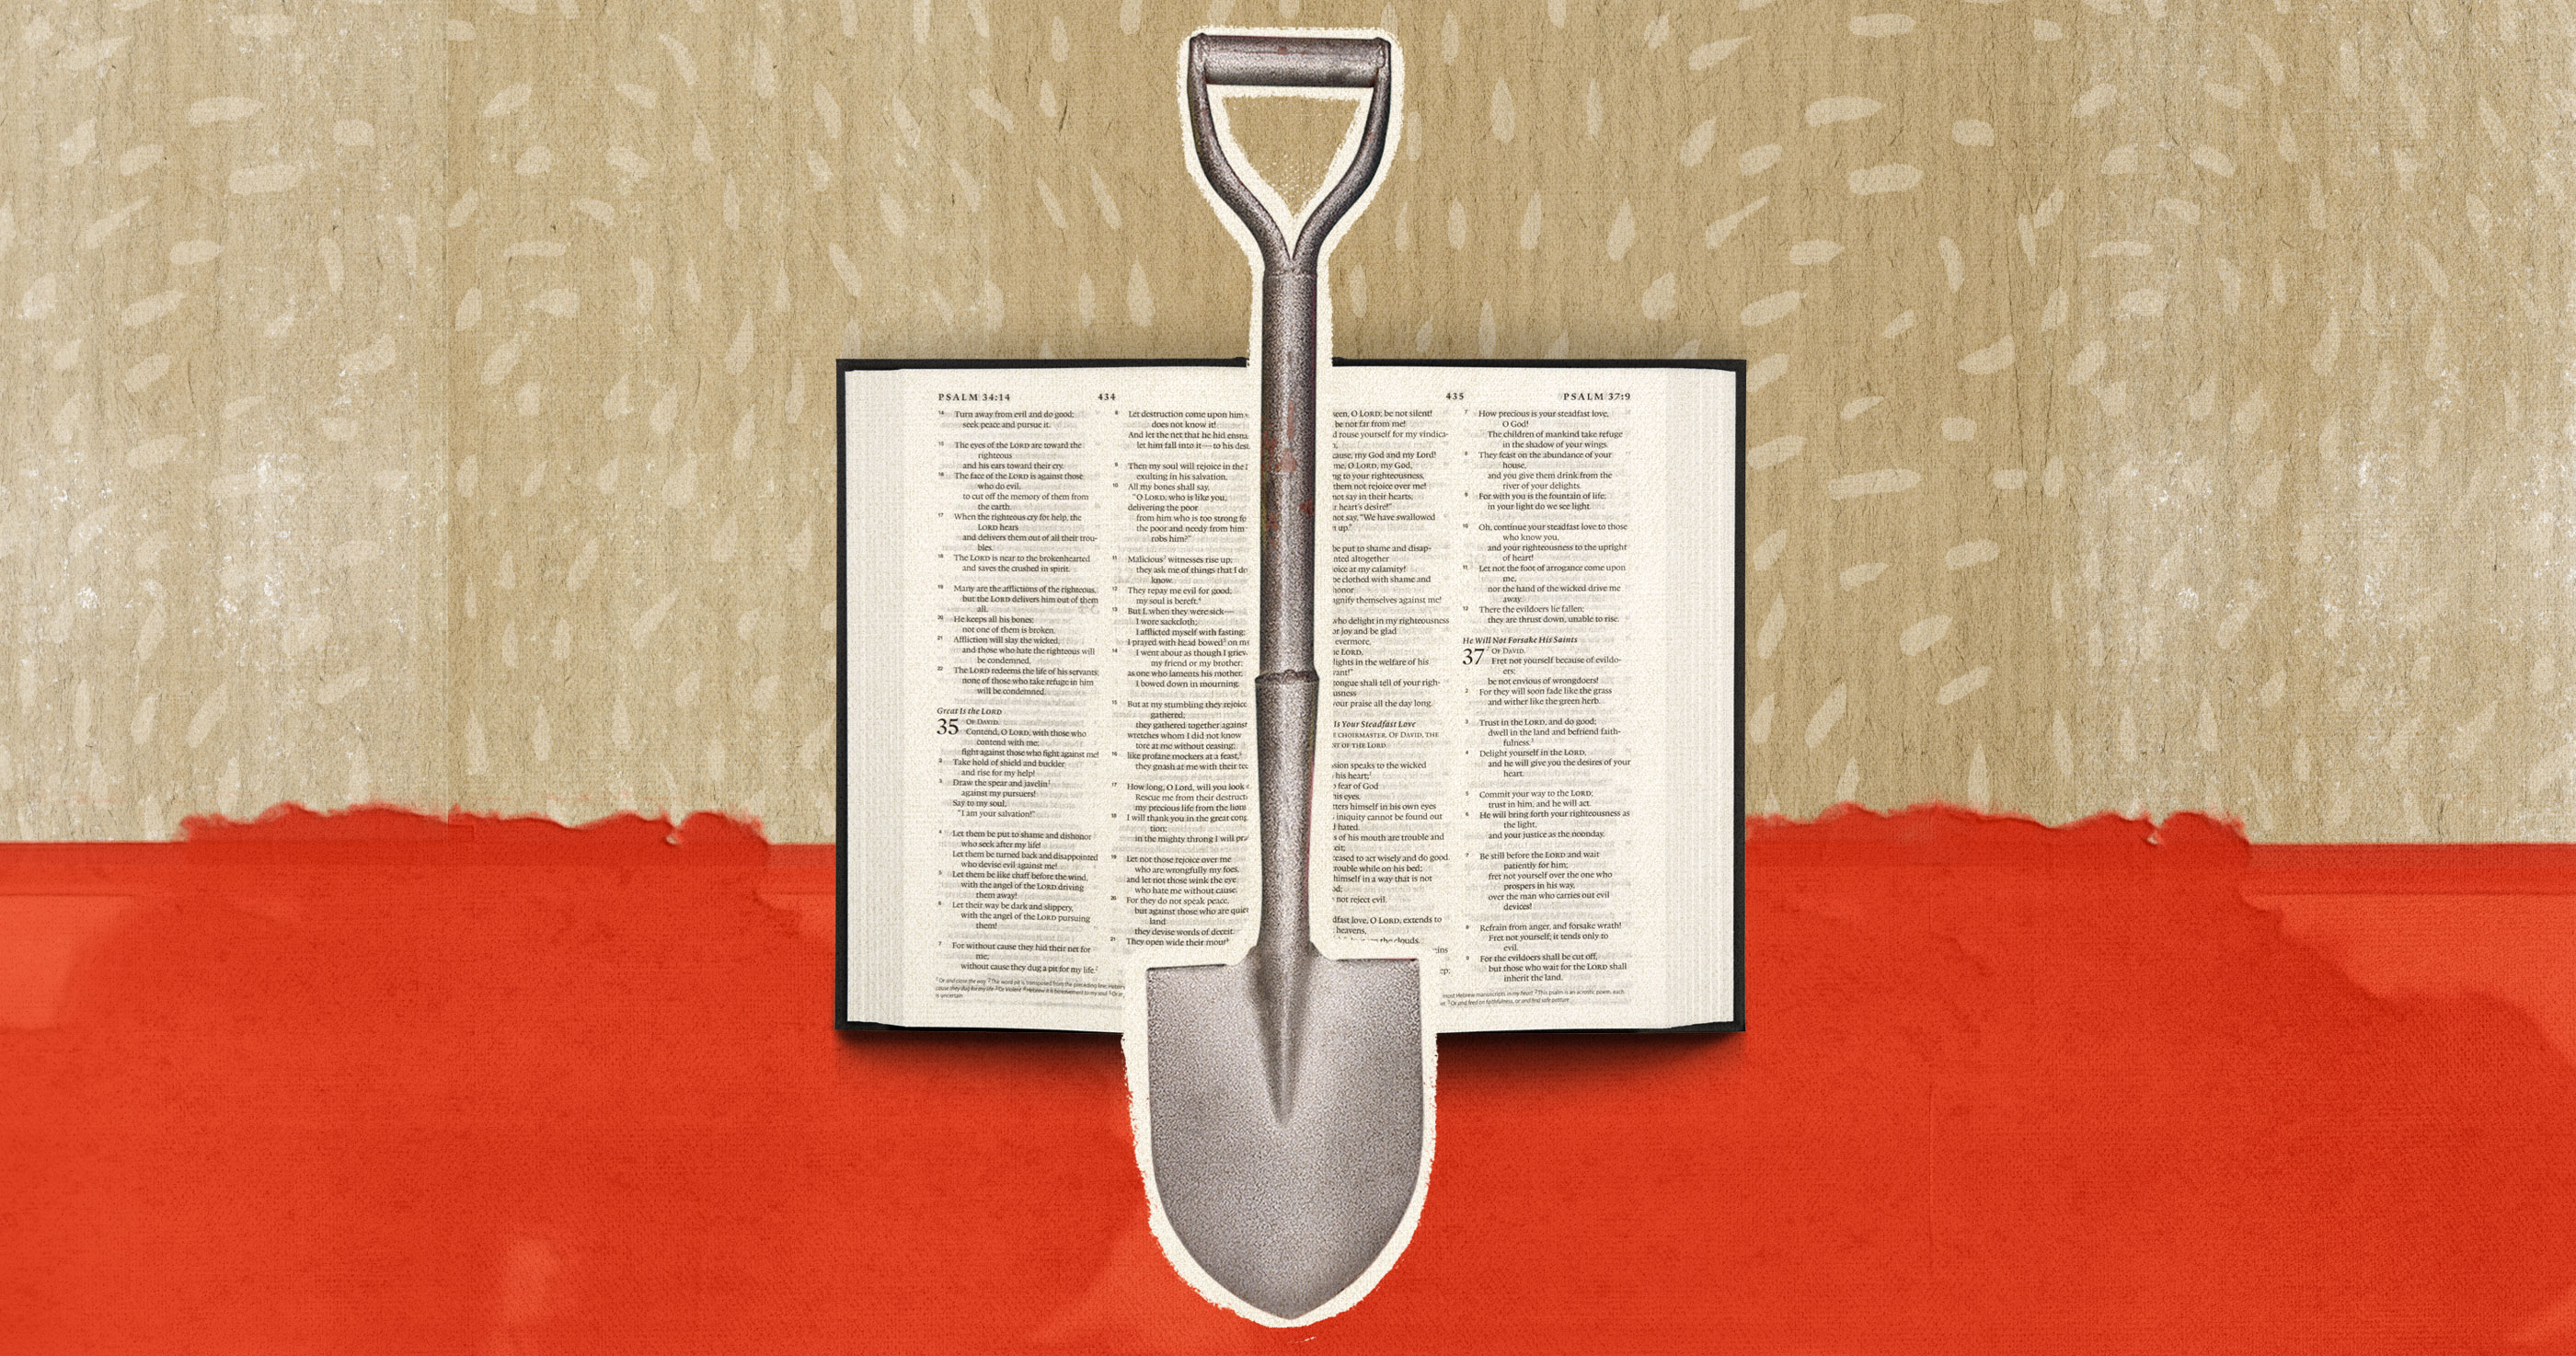 5 Suggestions for Serving to Your Teenagers Examine the Bible